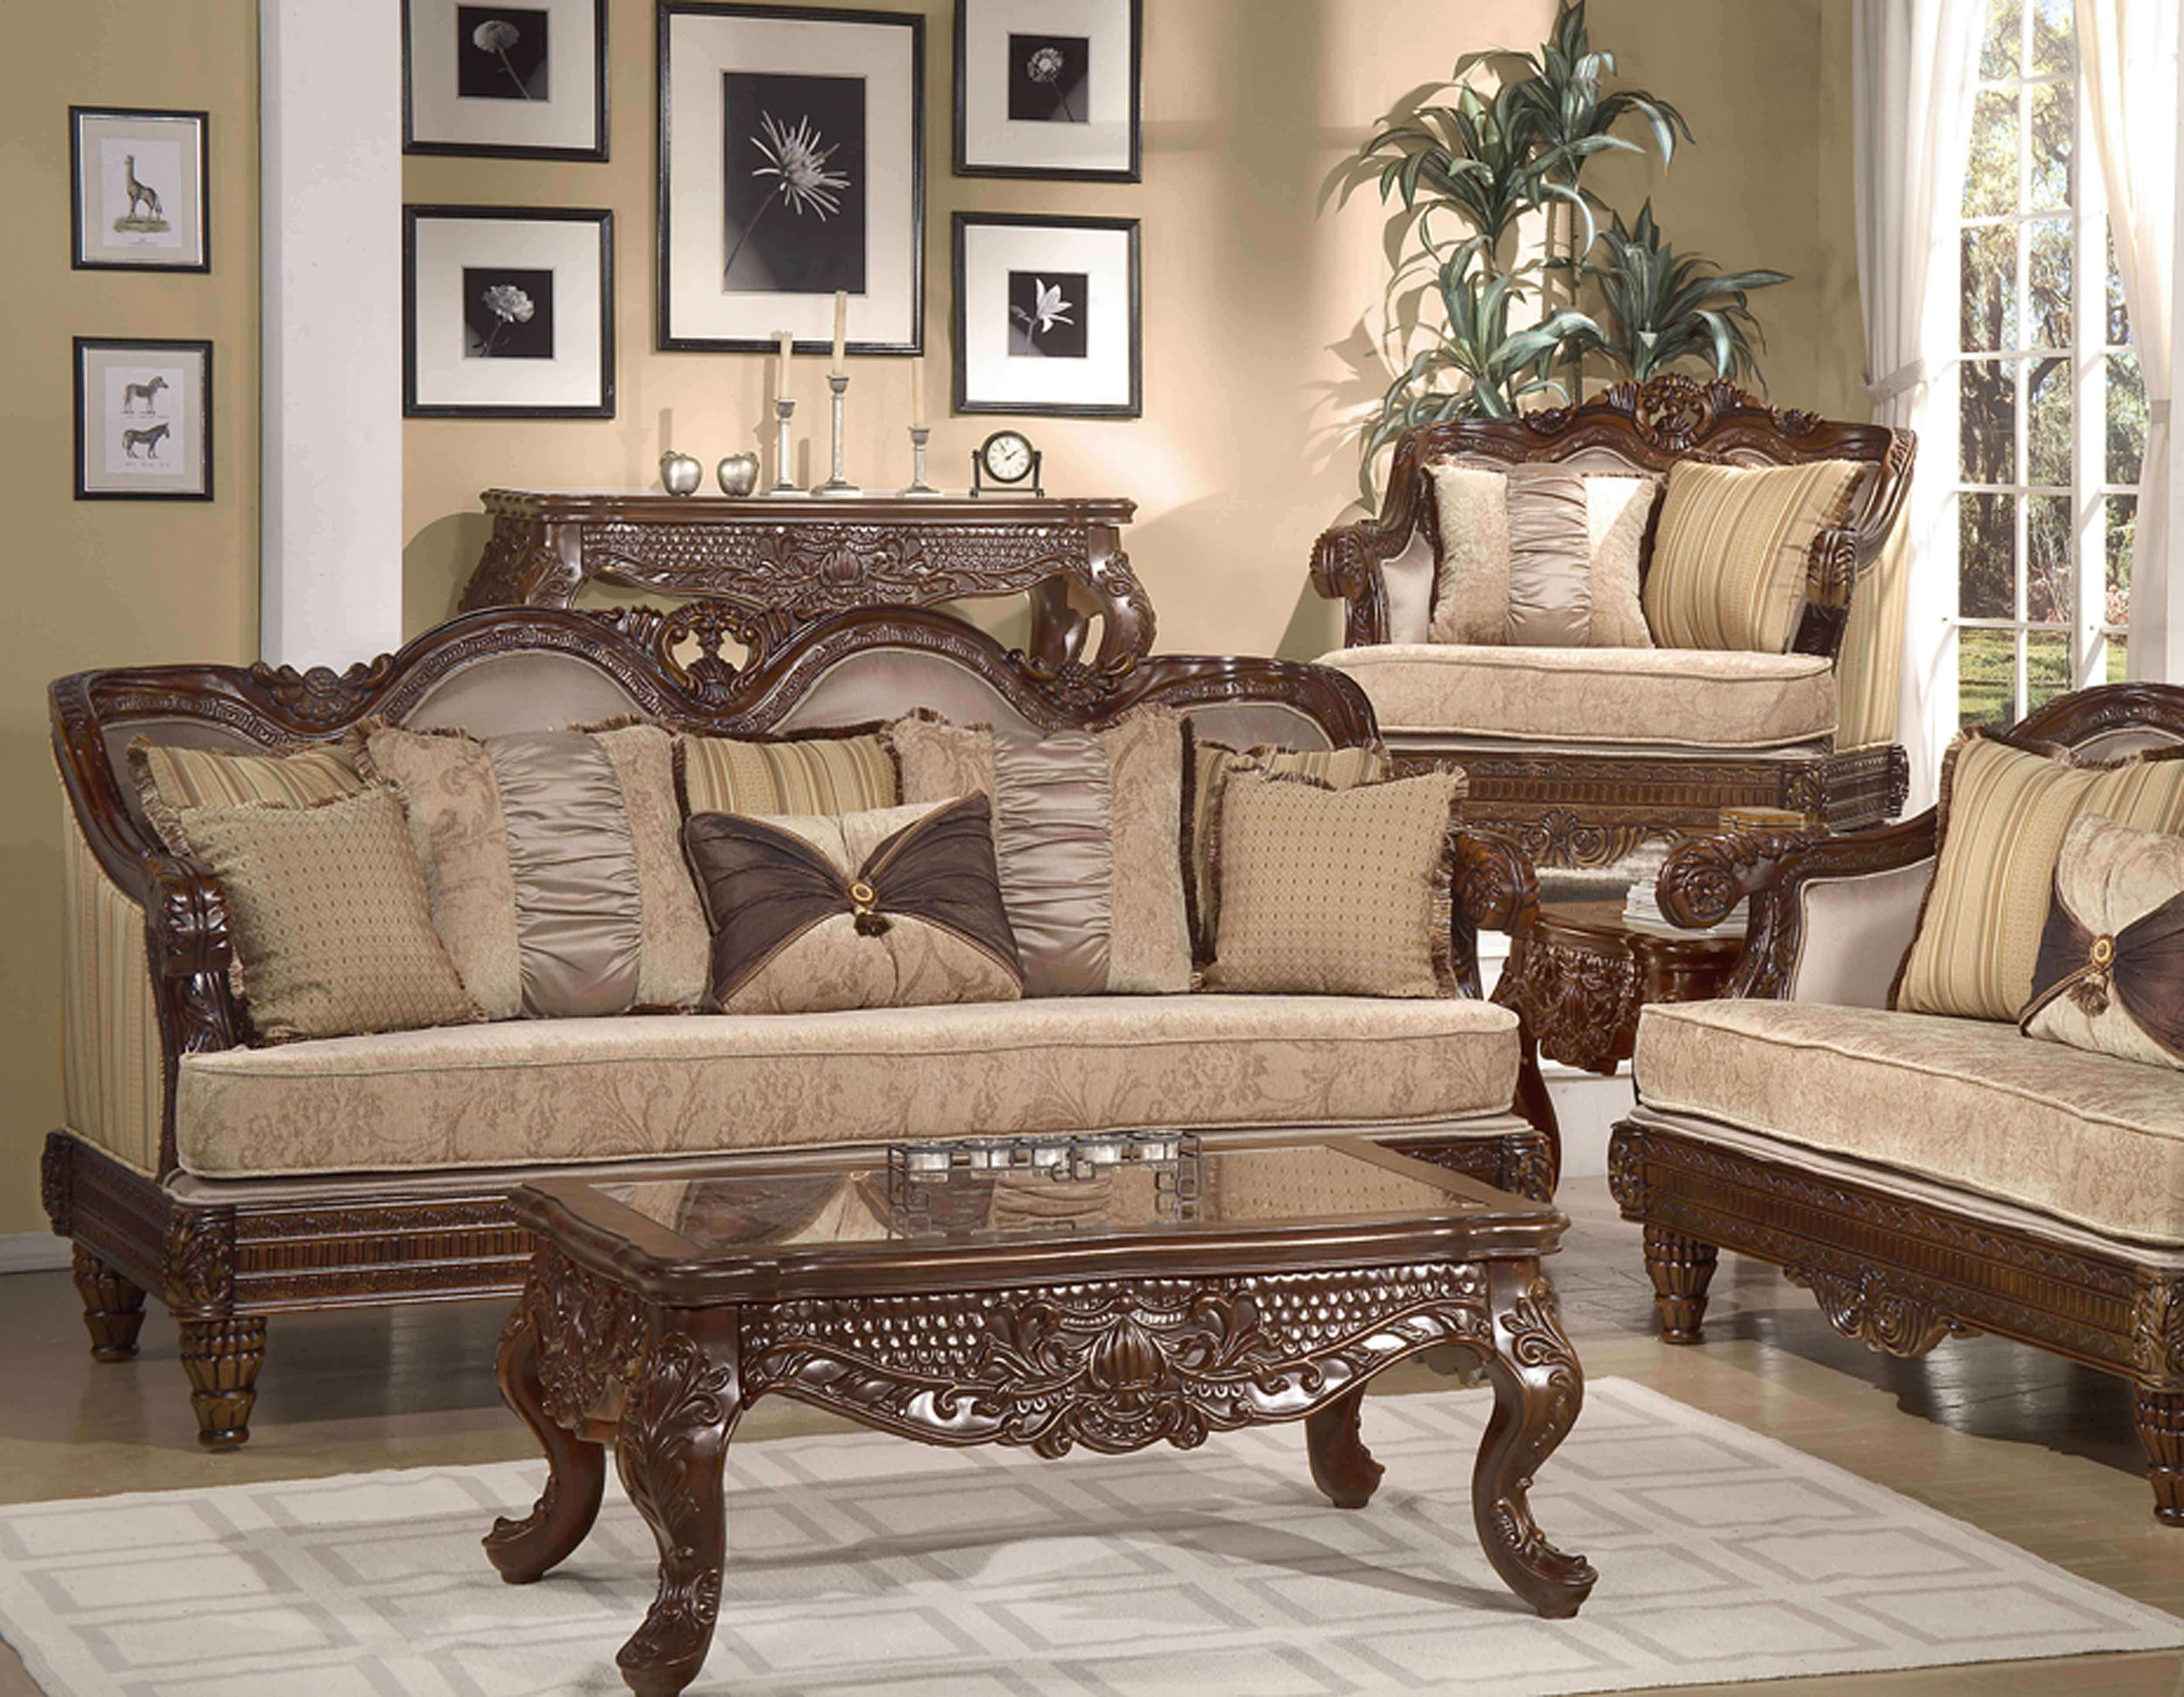 Bedroom theme Ideas Inspirational Living Room Traditional Decorating